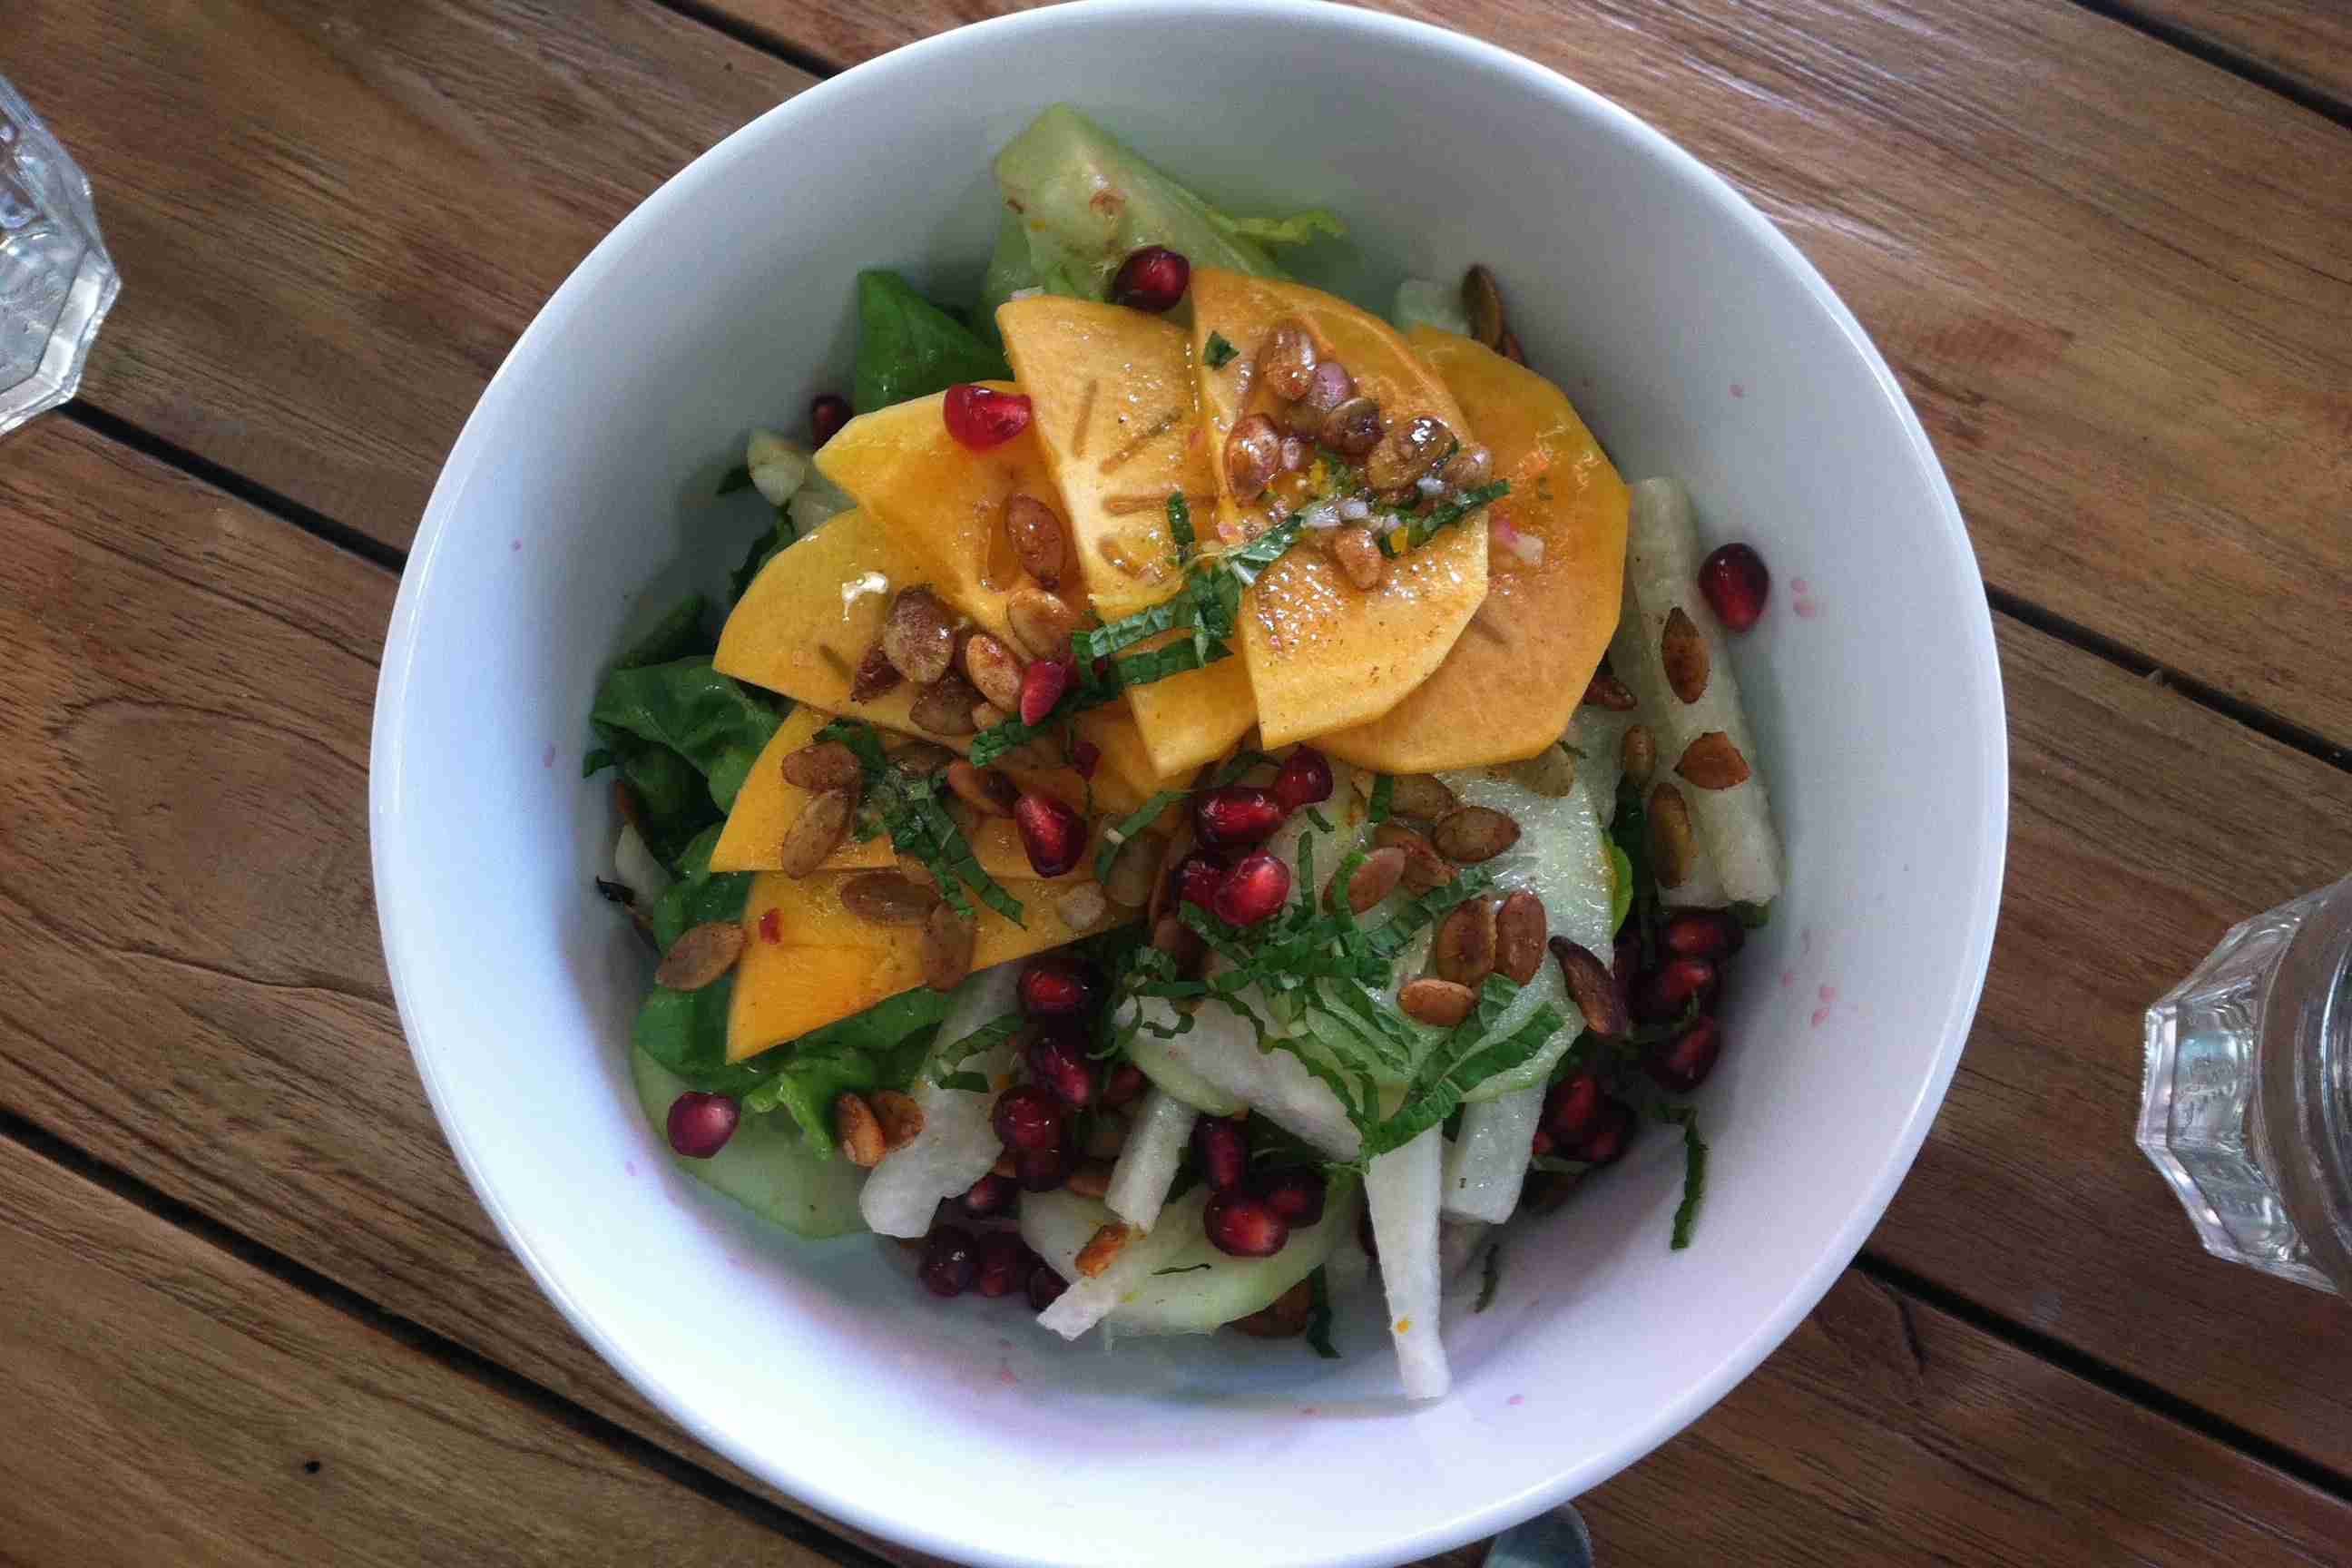 A bowl of pomegranate seeds on autumn salad